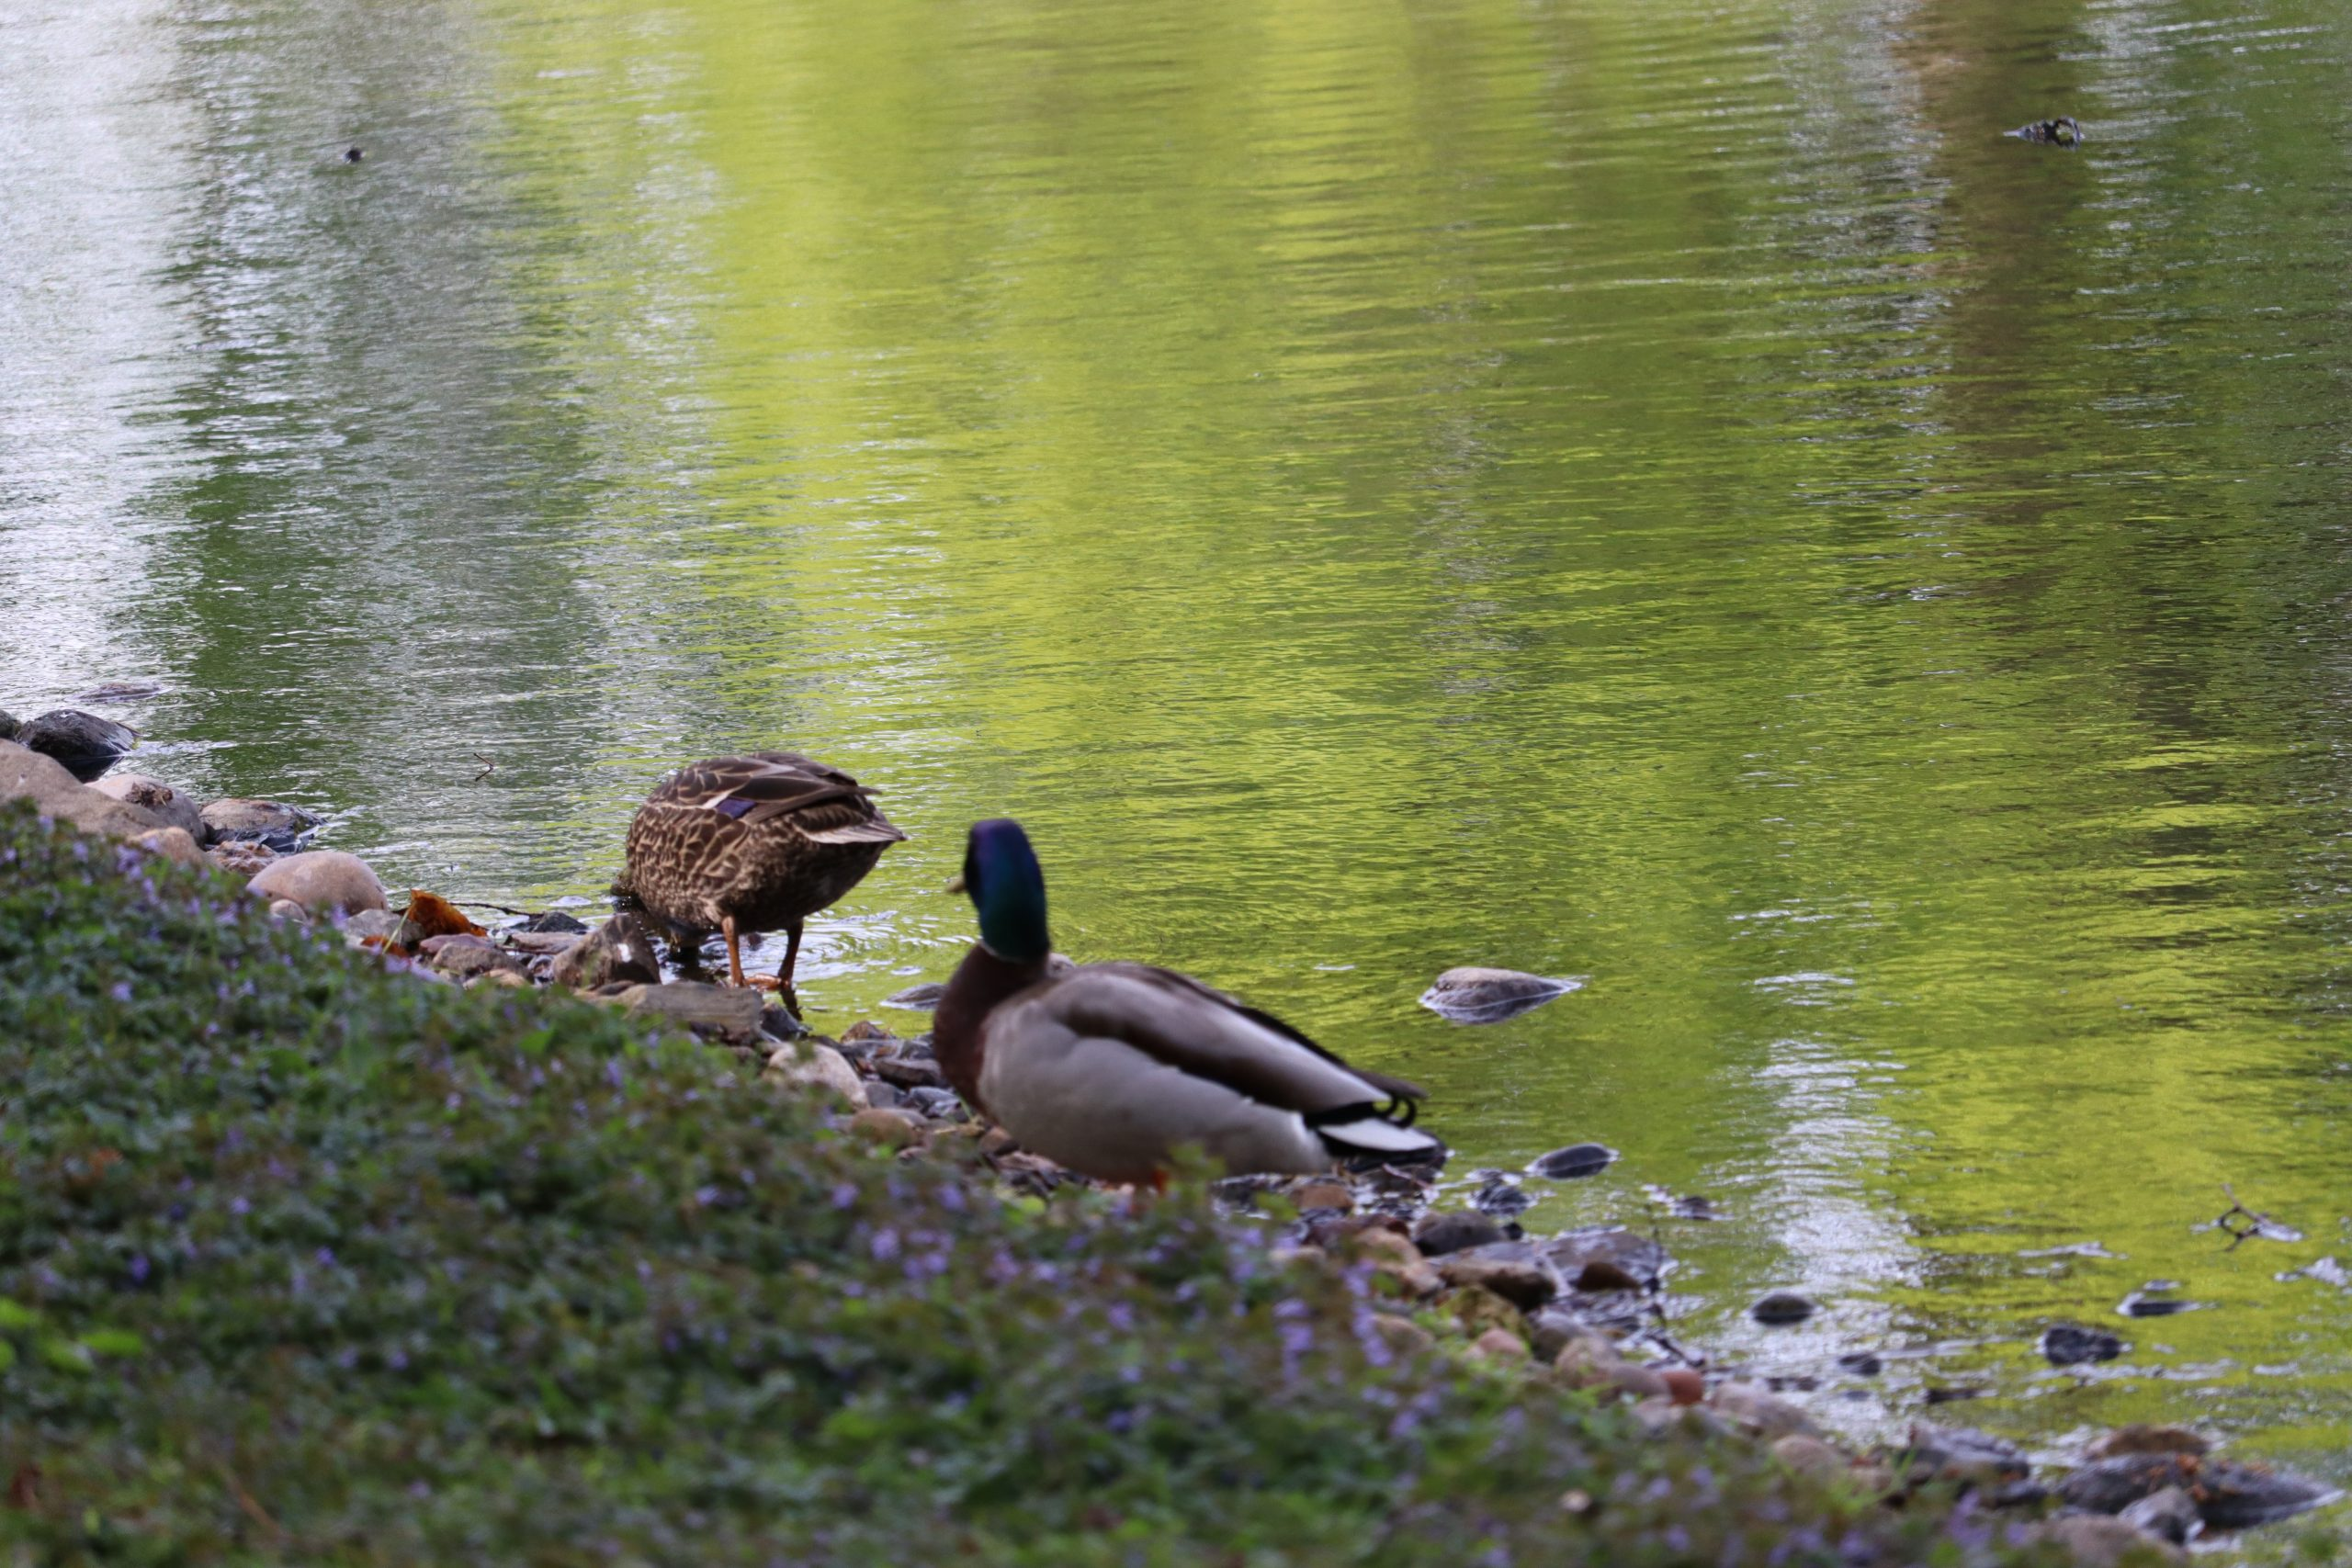 these down by Sylvan Water. I felt like I saw more pairs of birds as I got closer to the water.